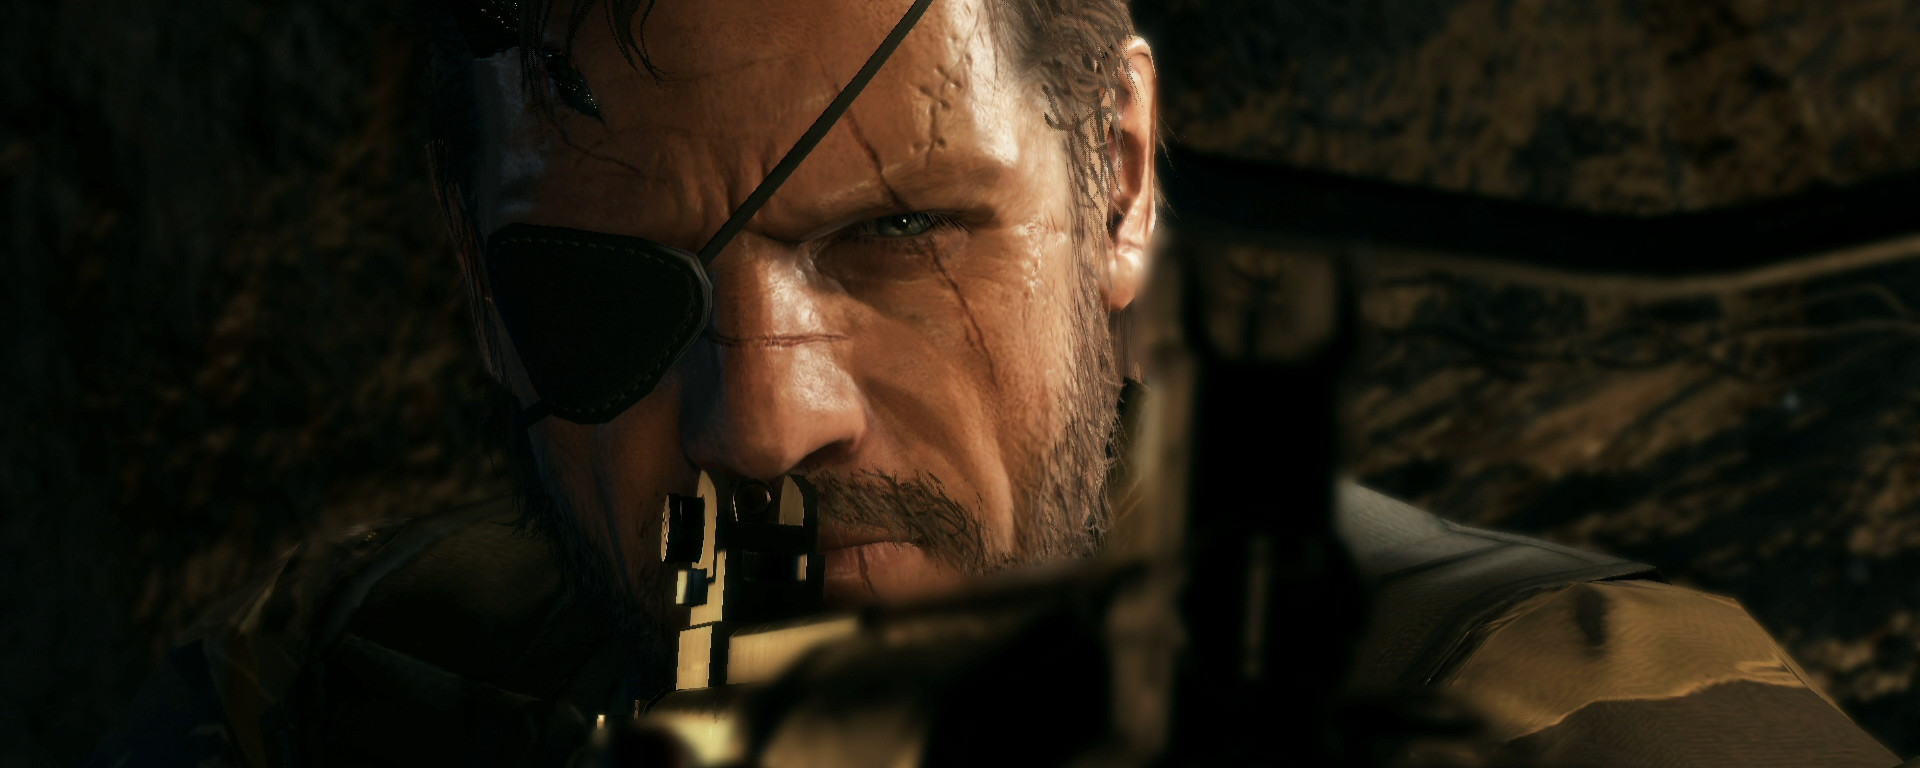 mgs5-phantom-pain-snake